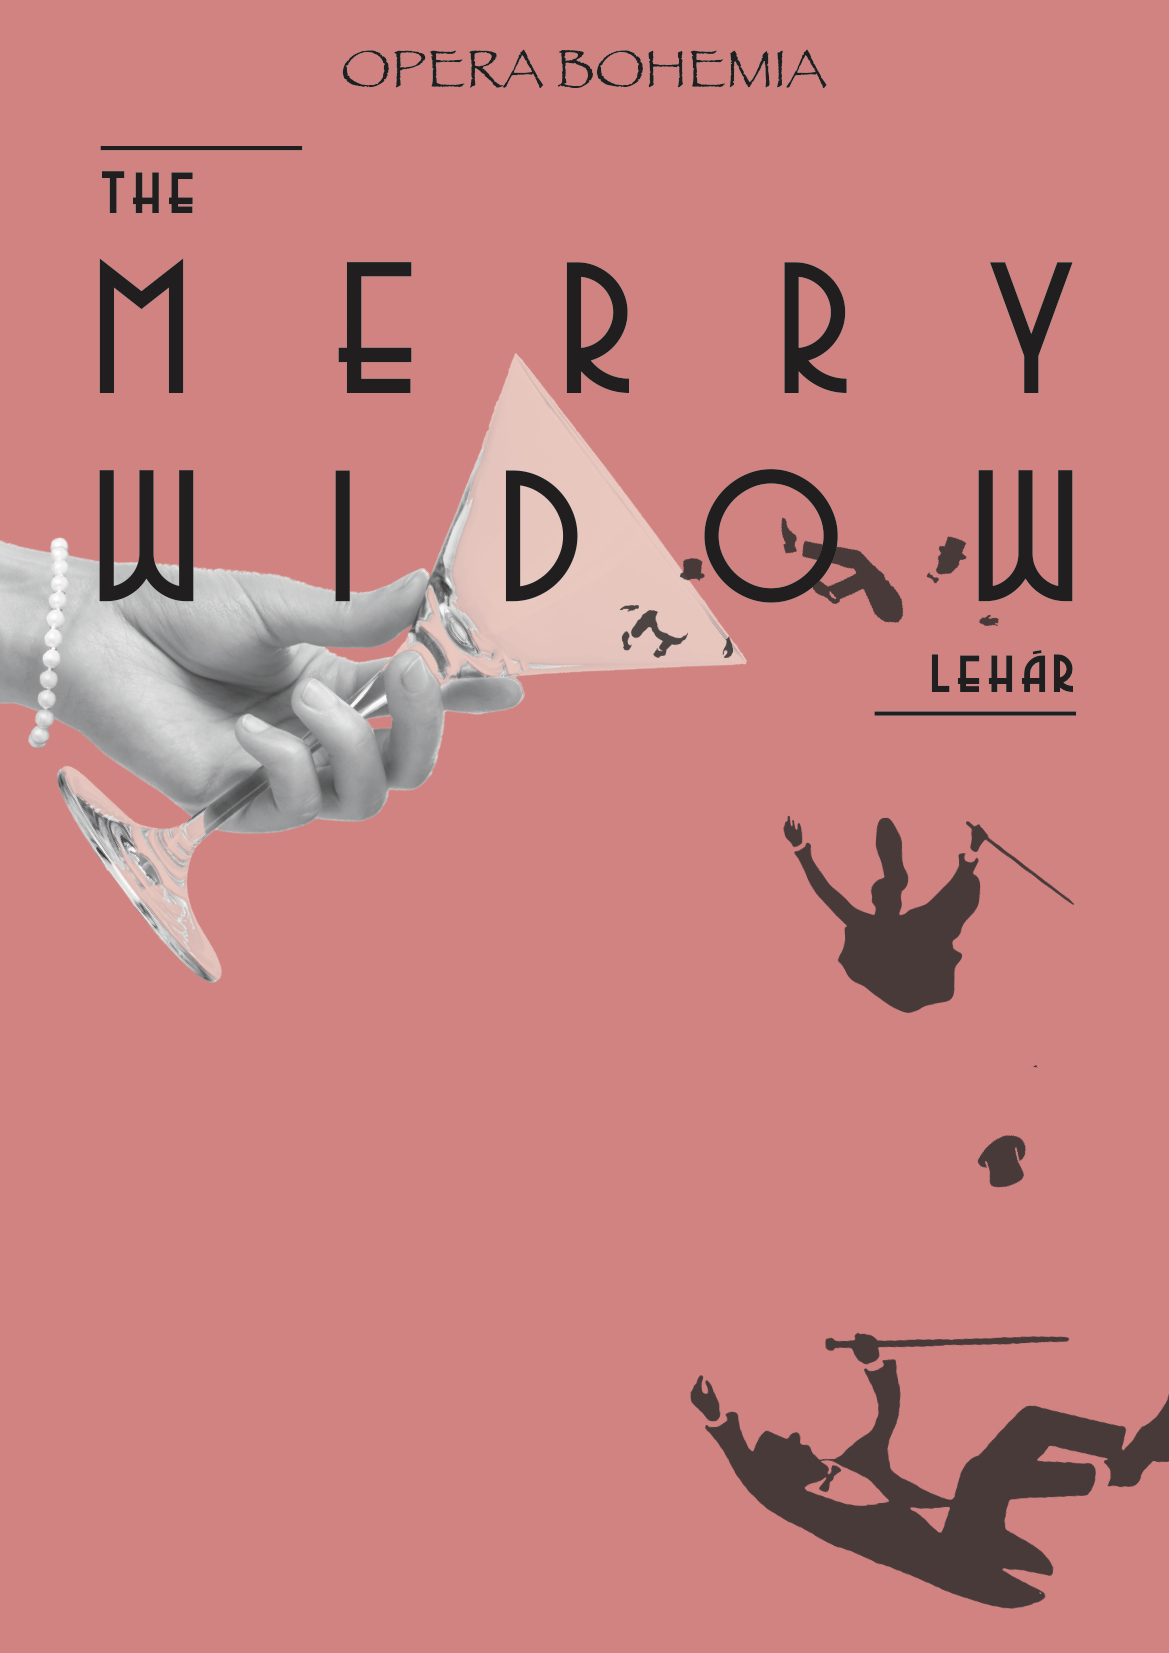 OPERA: The Merry Widow by Opera Bohemia banner image